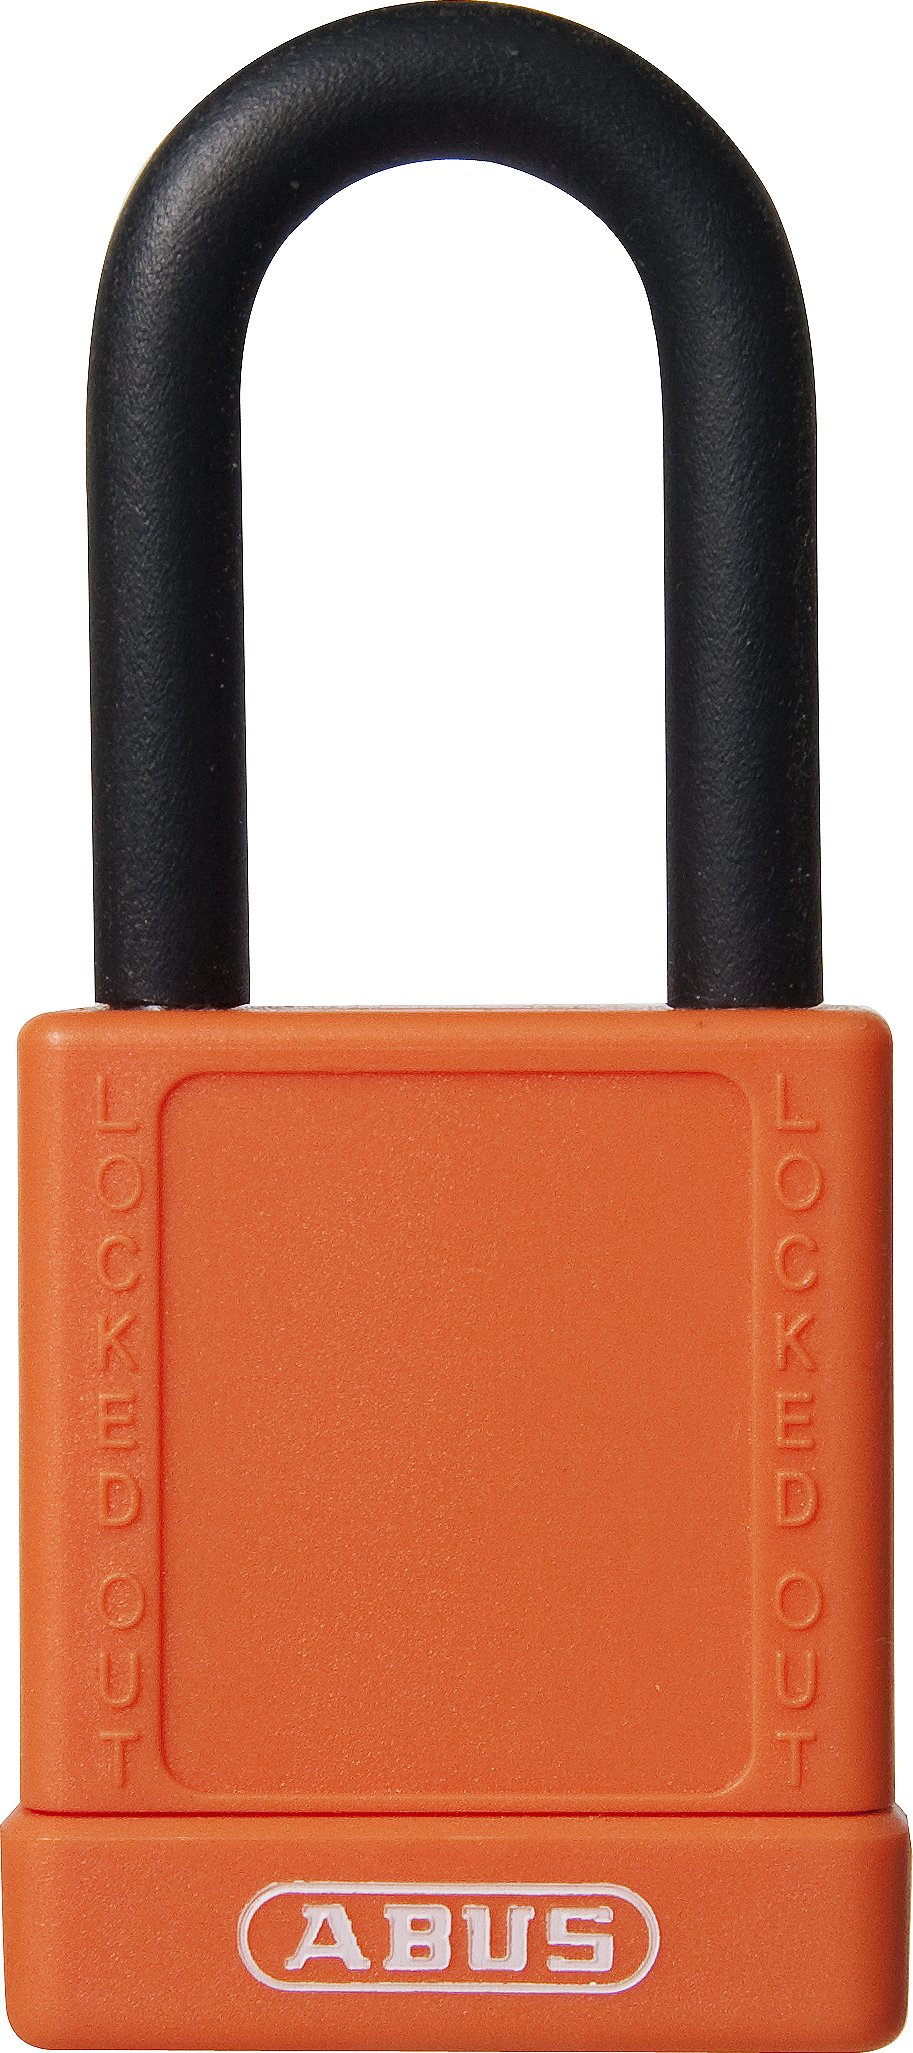 ABUS 74/40 KD Safety Lockout Non-Conductive Keyed Different Padlock with 1-1/2-Inch Shackle, Orange